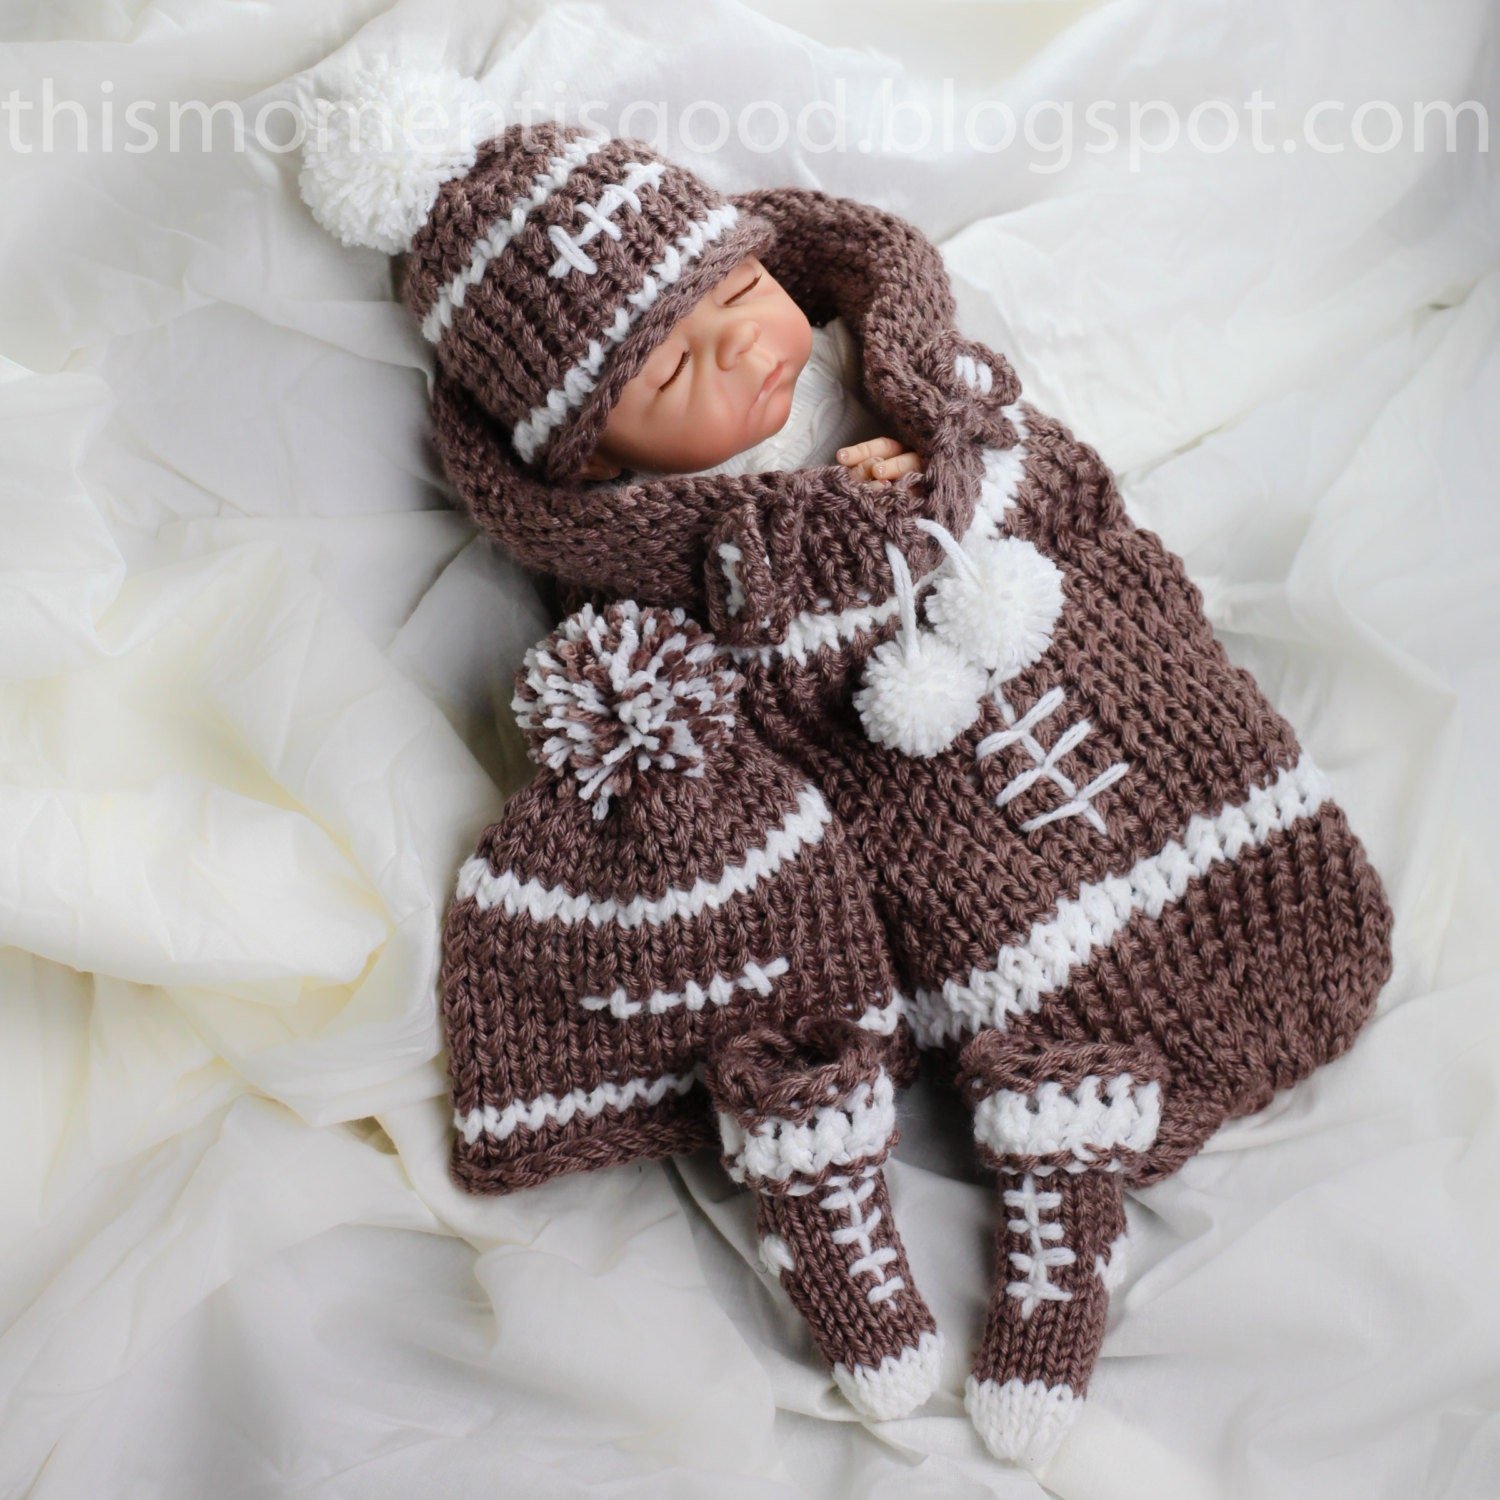 Loom Knit newborn cocoon PATTERN, loom knit hat pattern loom knit ...